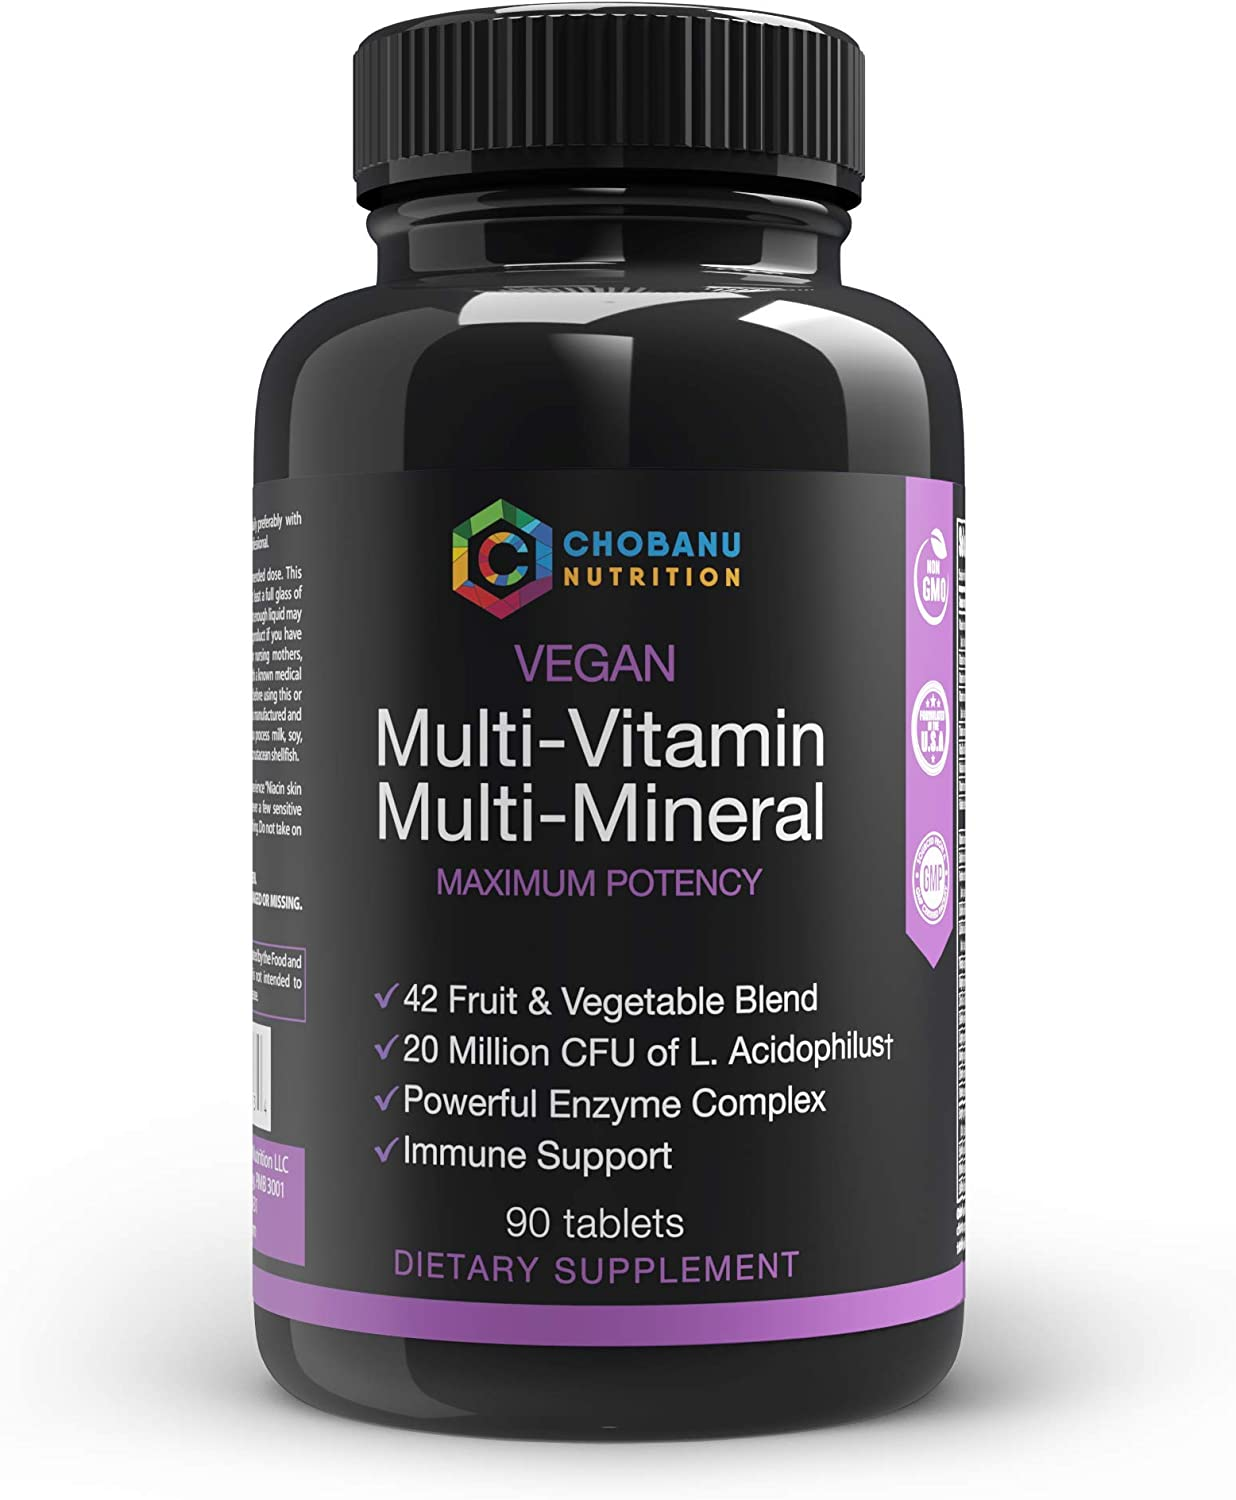 Whole Food Mega Multivitamin & Mineral Complex with 42 Fruit & Veggies Blend, Probiotic, Enzymes, Greens & Herb Blend, Packed with Vitamins A B C D E, Zinc, Antioxidants for Digestive Support - 90 Tab